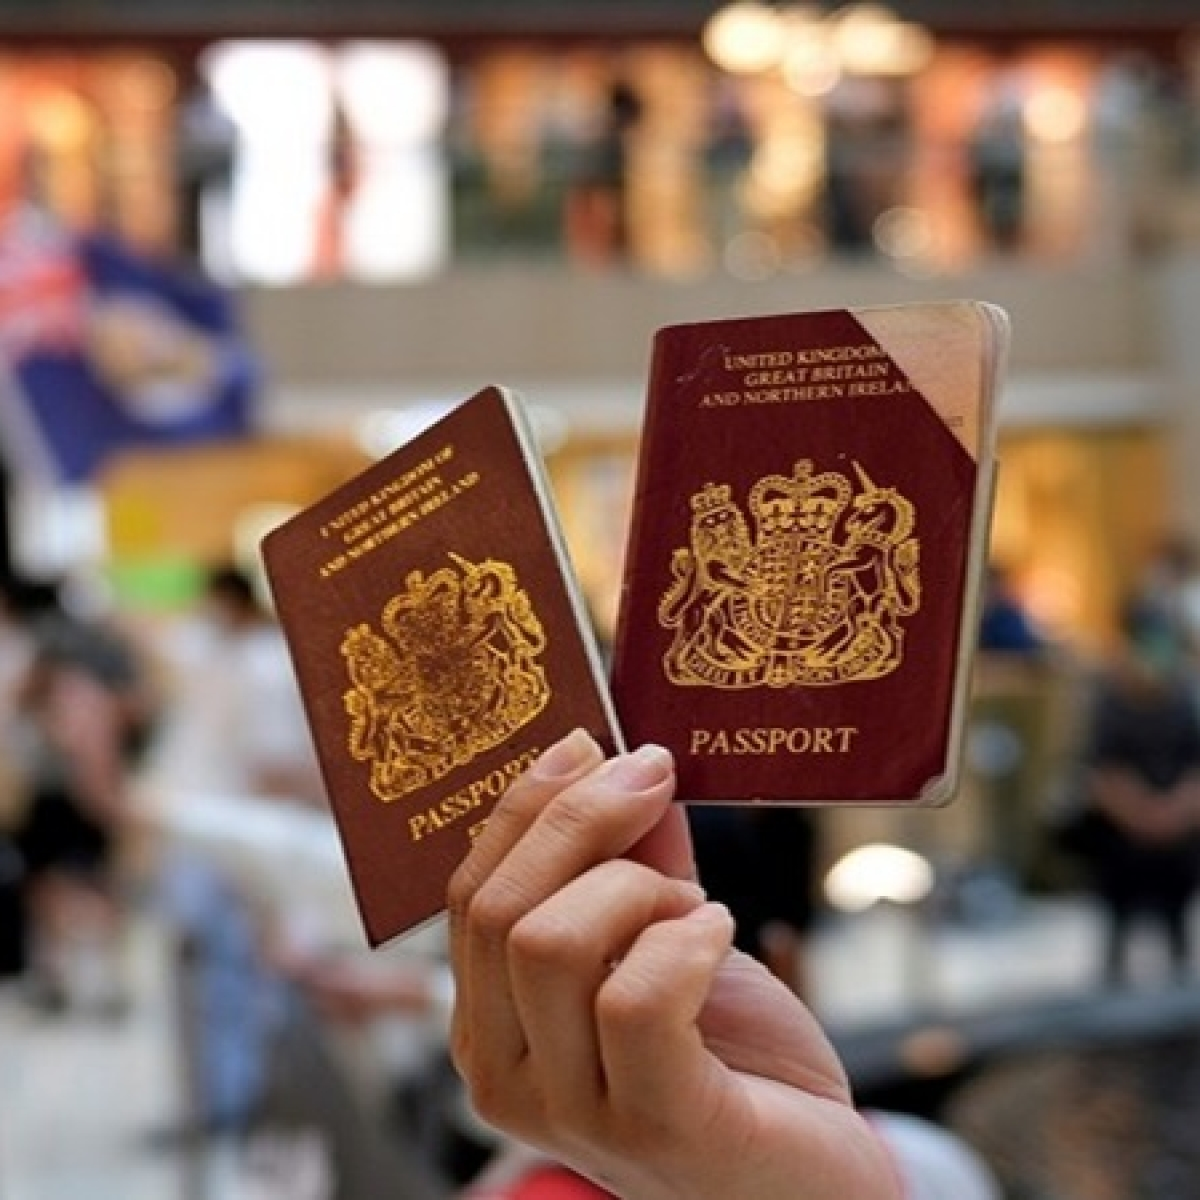 China likely to retaliate against UK's citizenship offer for Hong Kong residents: Report